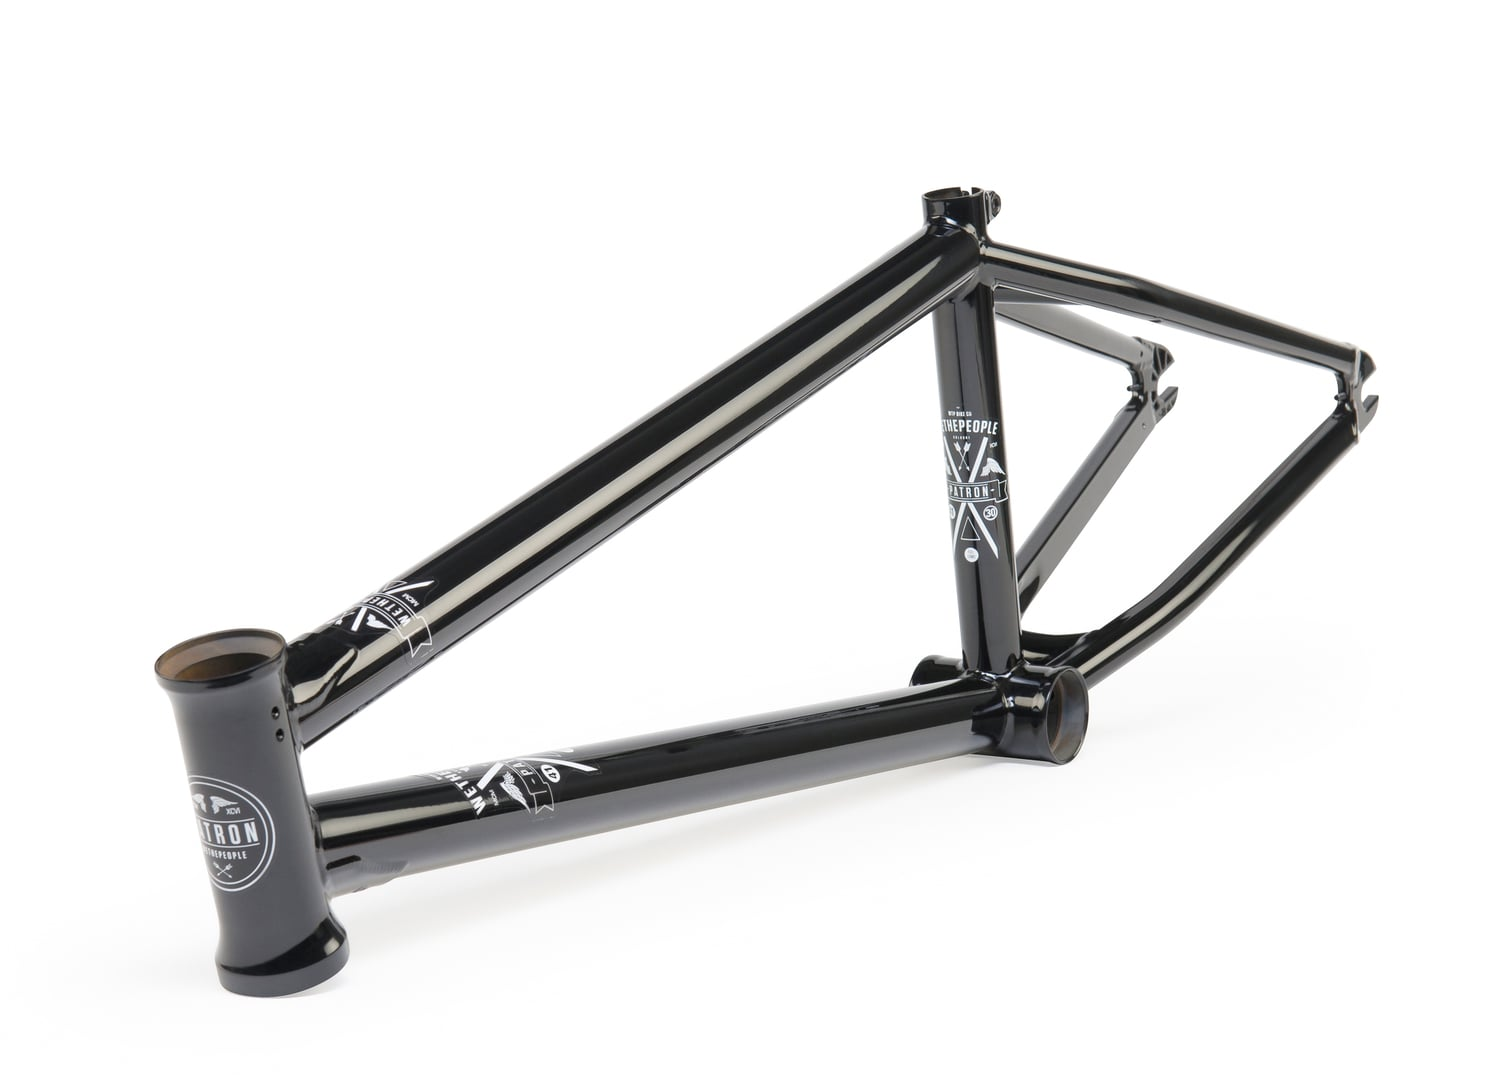 Inventory: The Patron Frame — WETHEPEOPLE BIKE CO.